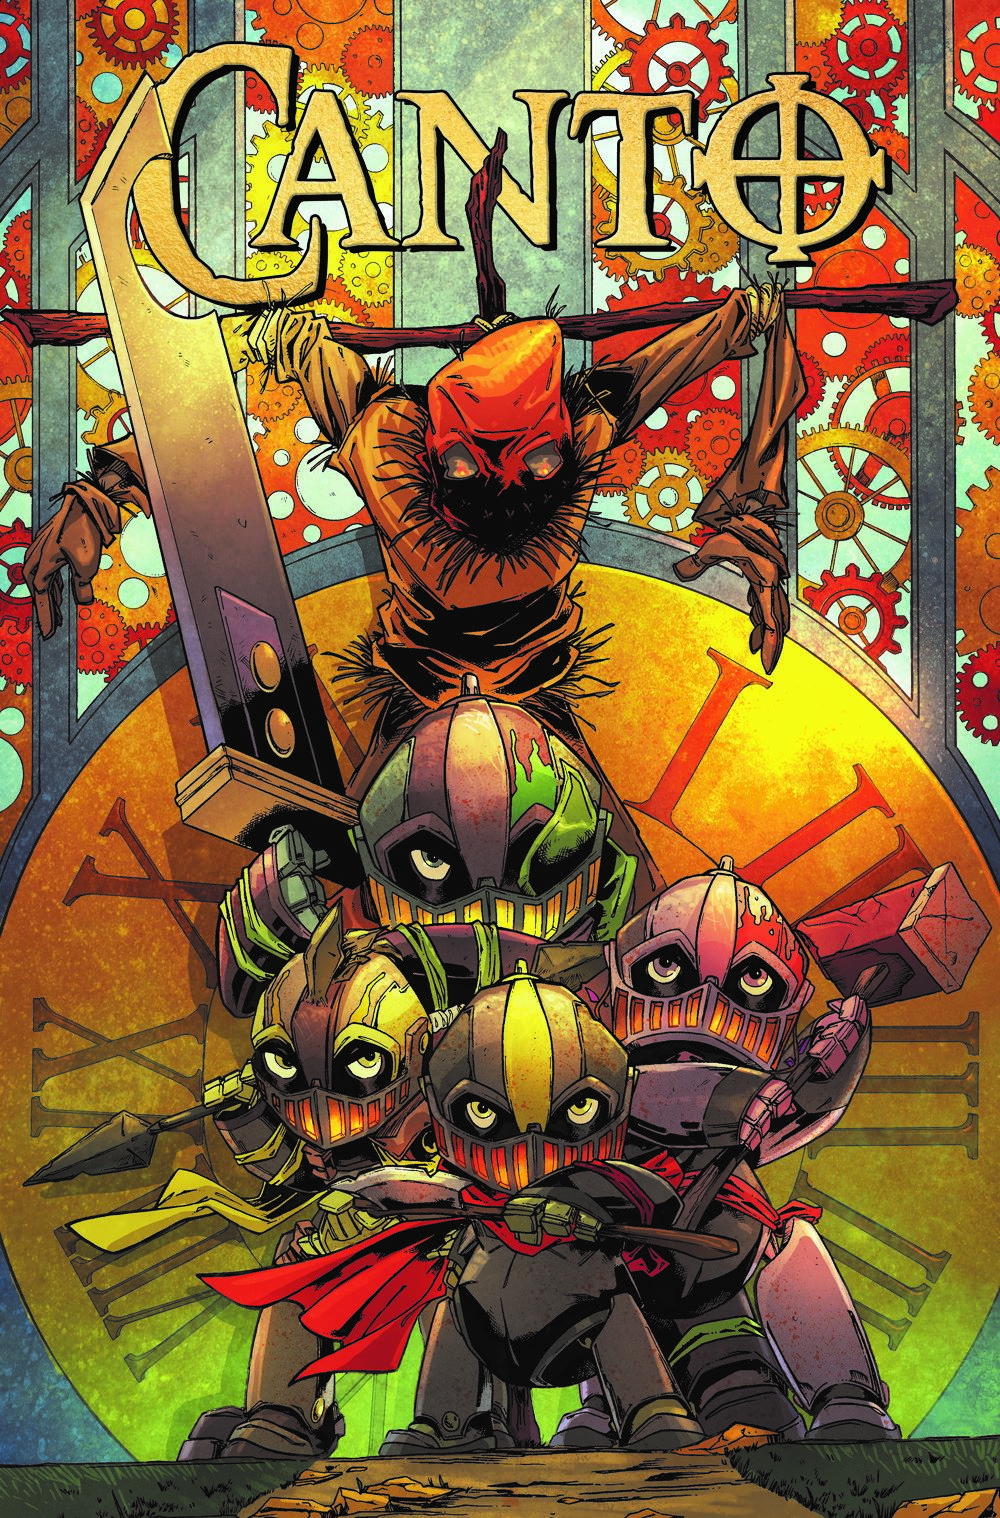 CANTOTPB_cvr ComicList: IDW Publishing New Releases for 06/09/2021